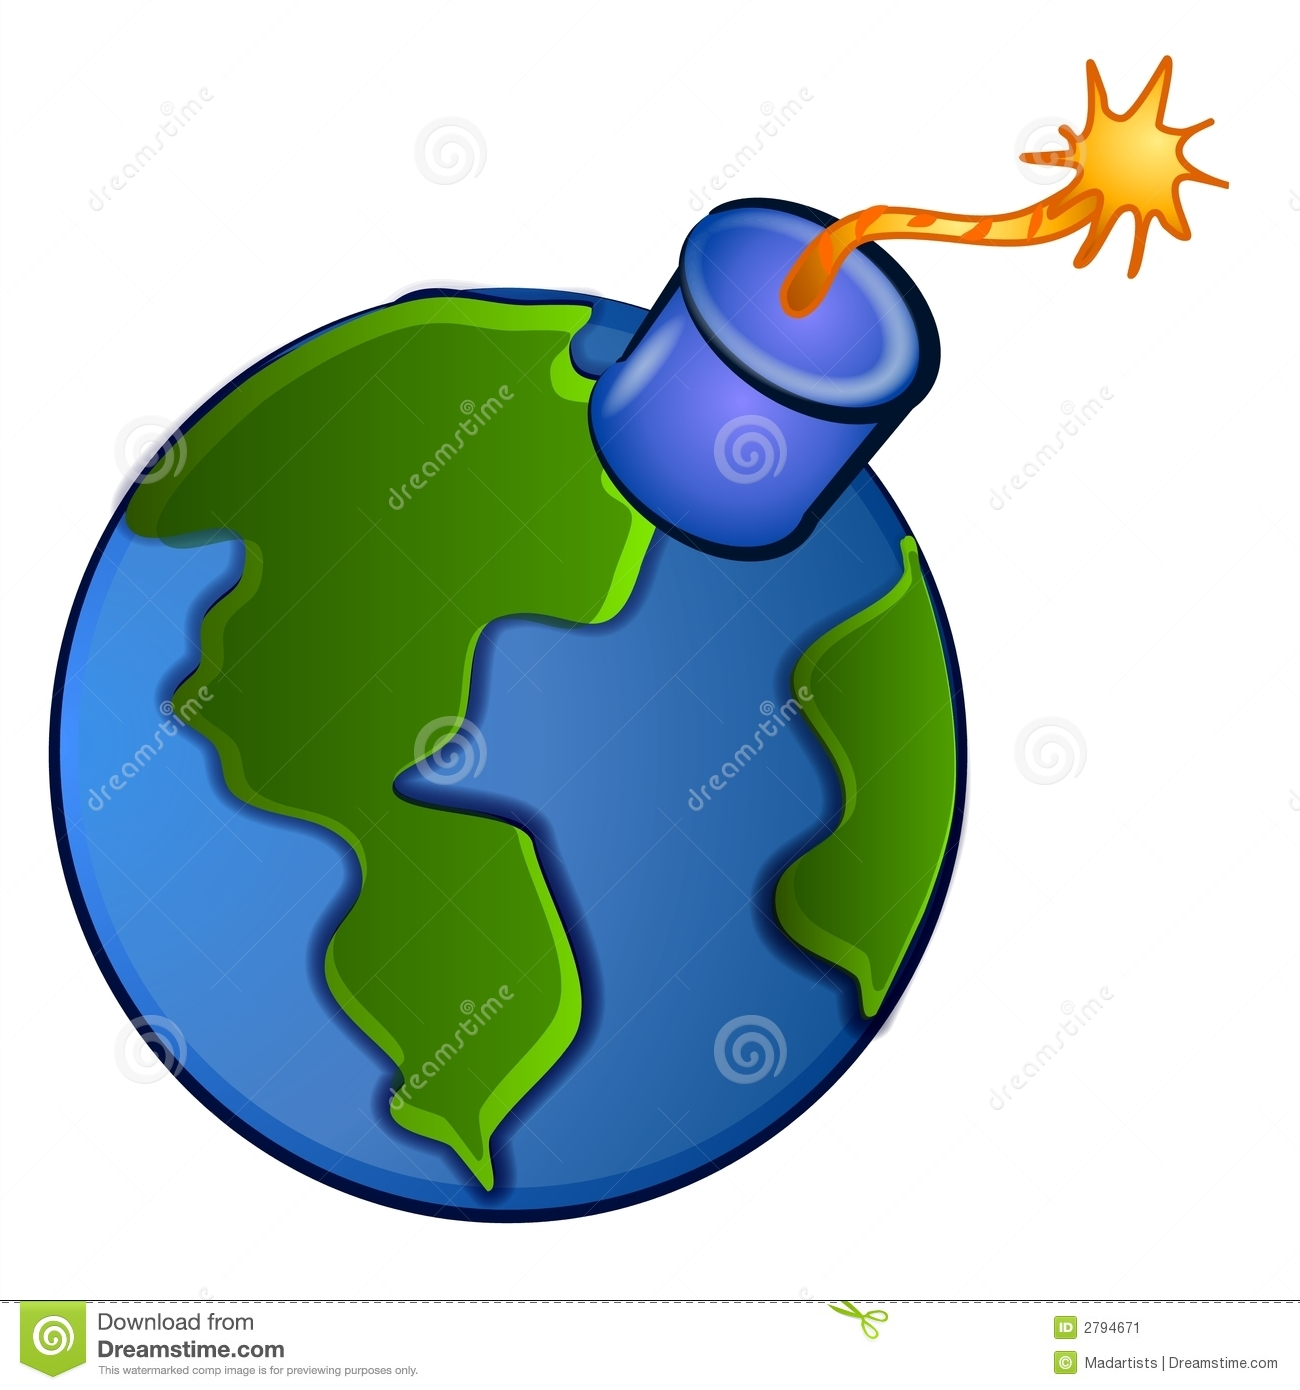 Explosions clipart earth 20clipart Bomb Images Clipart Clipart